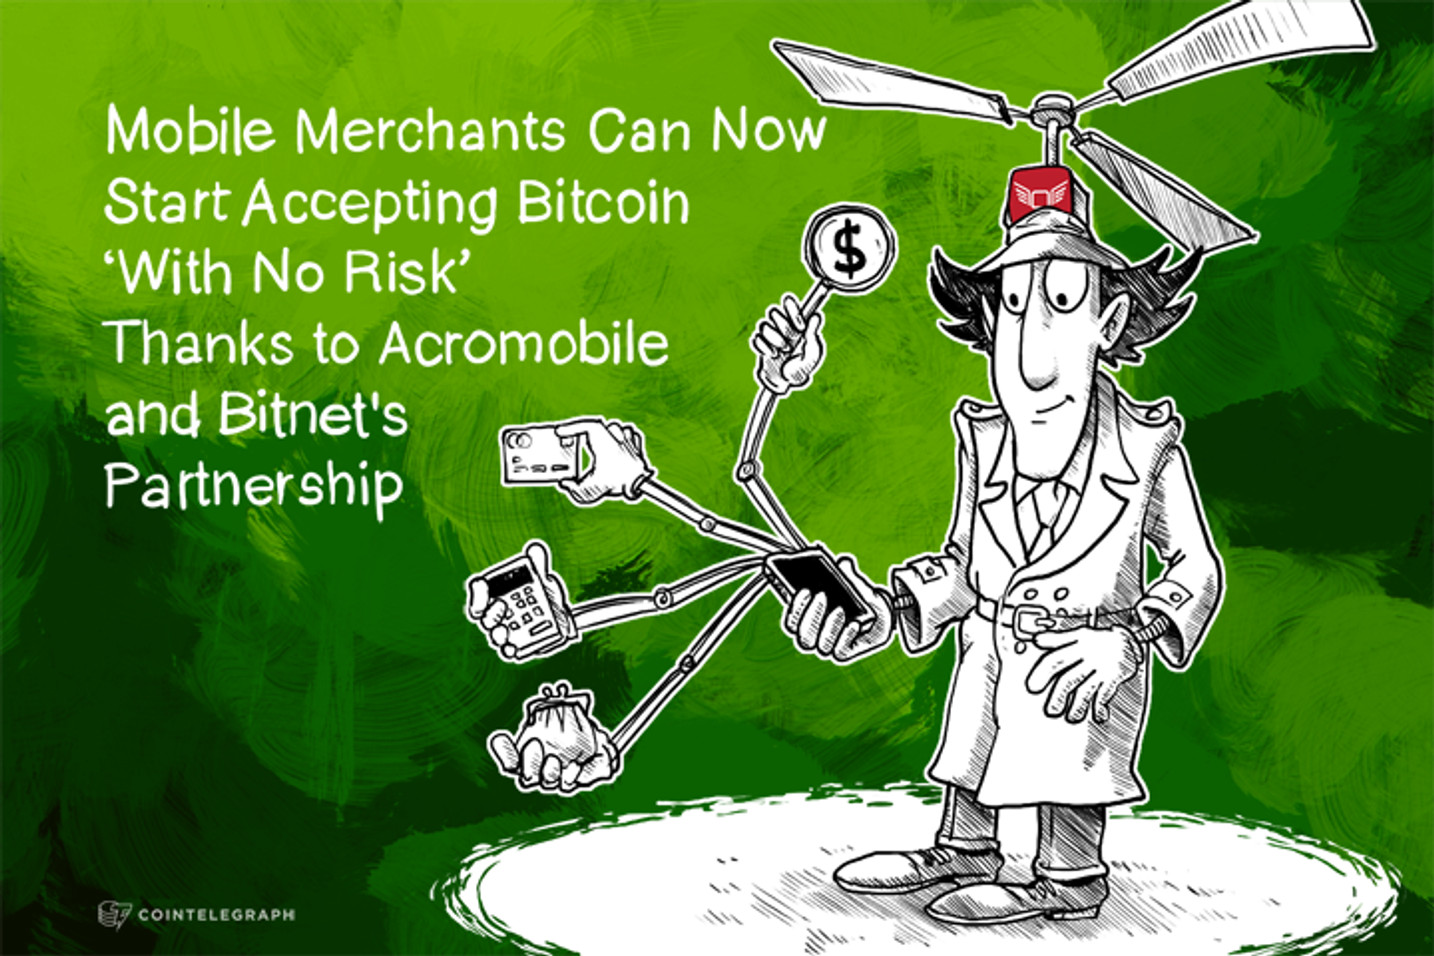 Mobile Merchants Can Now Start Accepting Bitcoin 'With No Risk' Thanks to Acromobile and Bitnet's Partnership